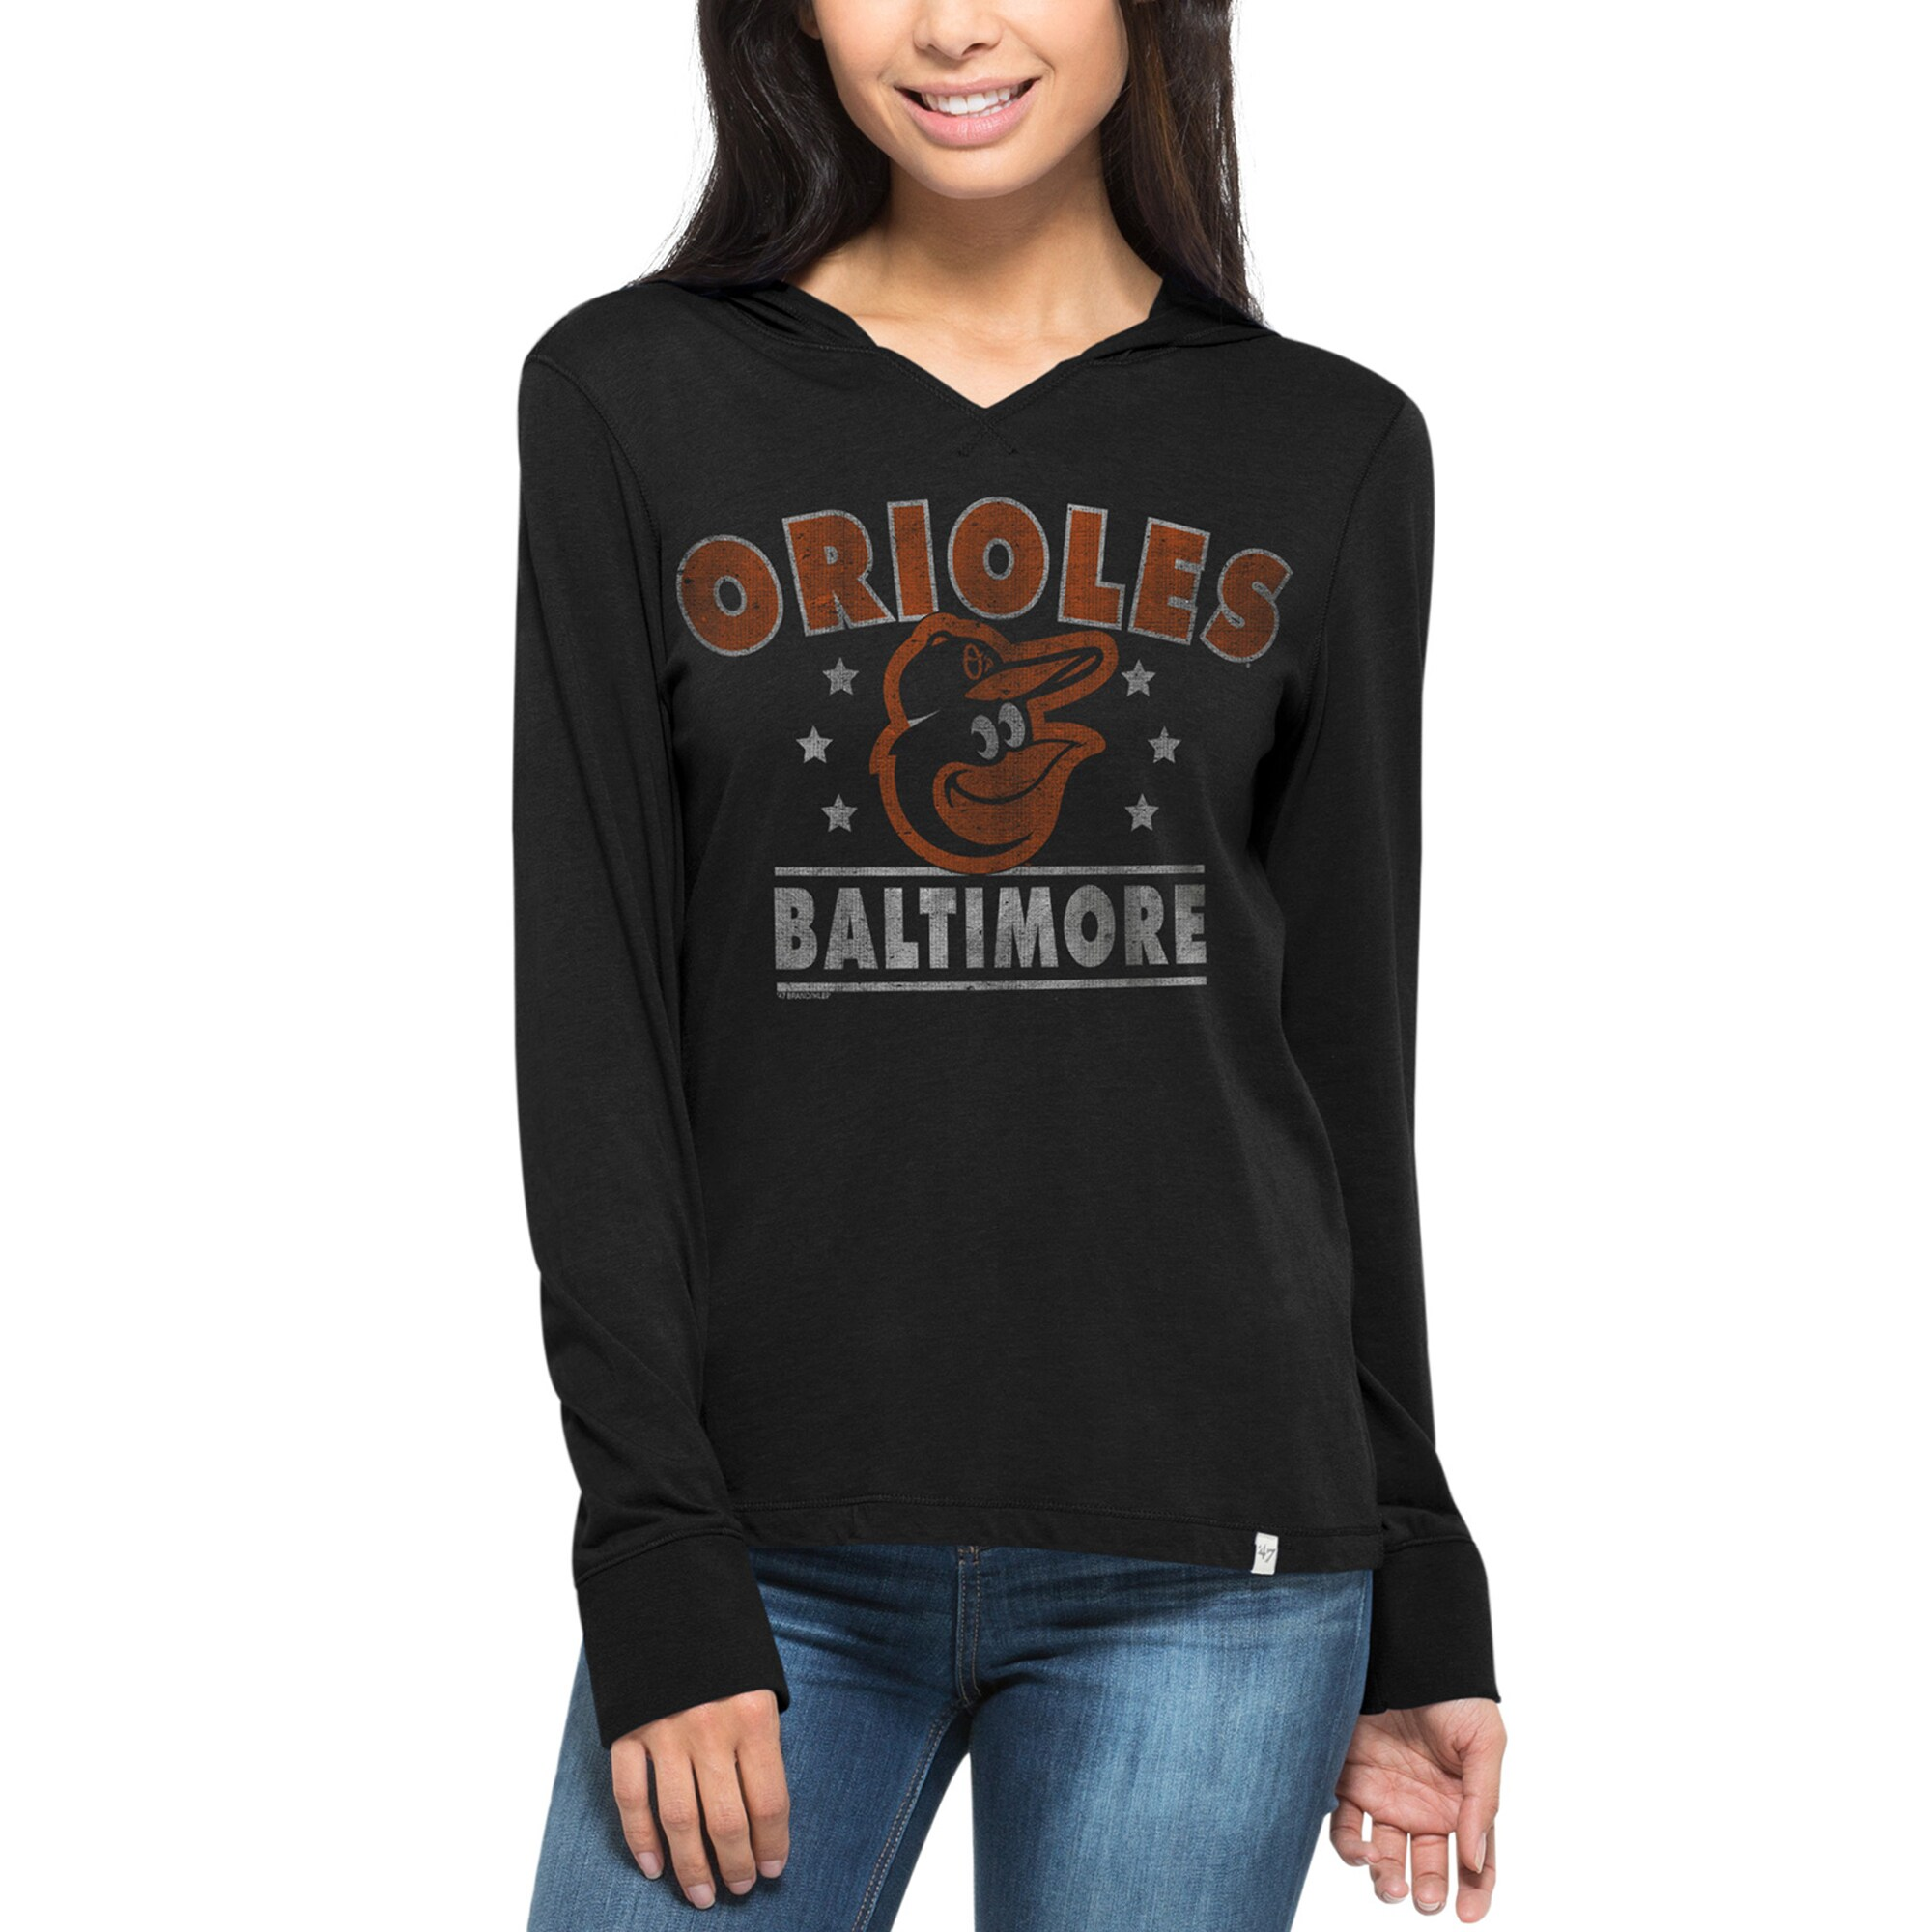 Baltimore Orioles '47 Women's Rebound Hoodie Long Sleeve T-Shirt - Black